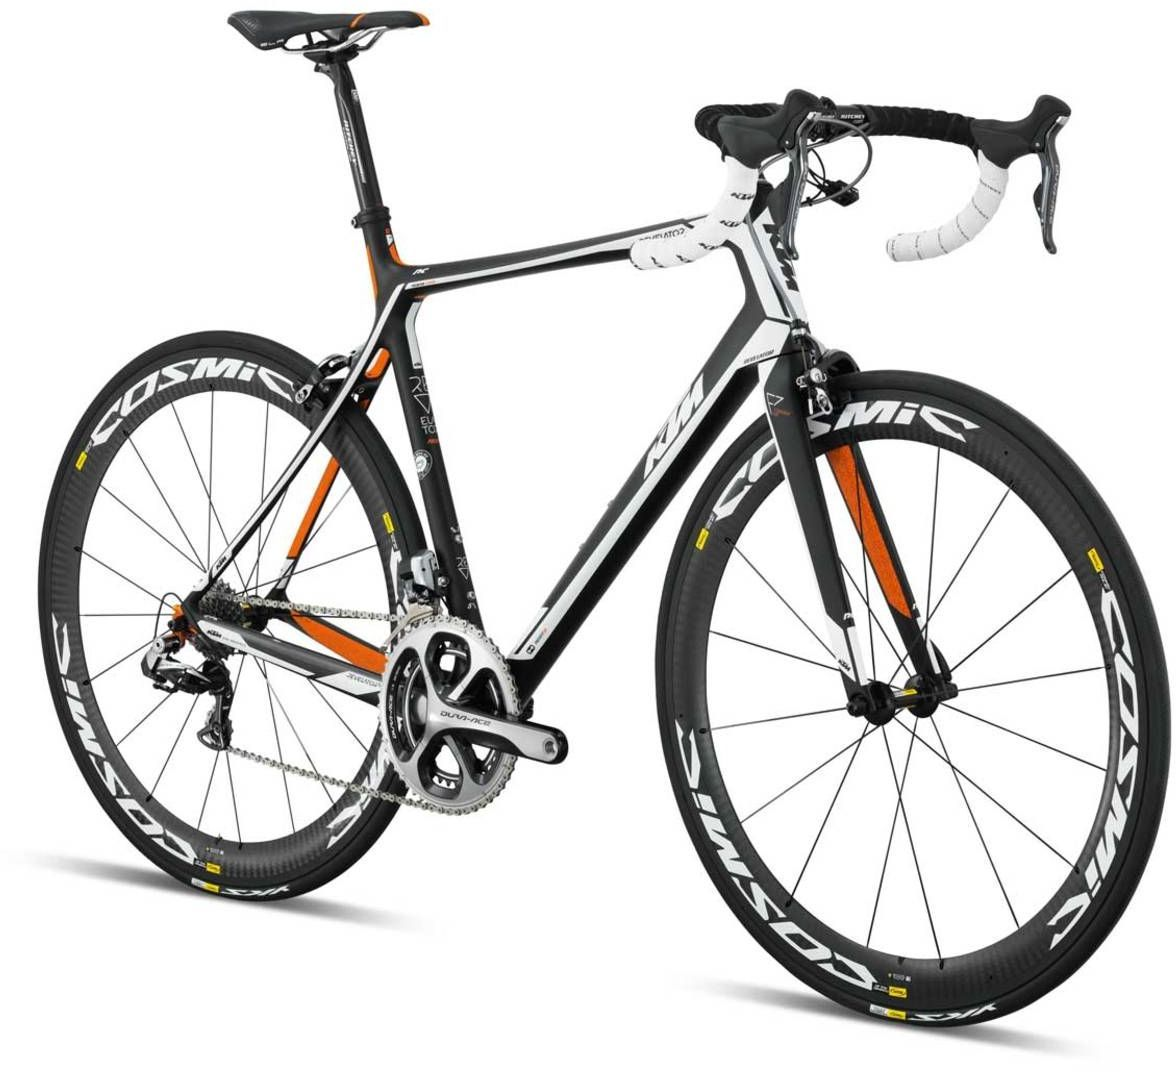 Ktm Revelator Prestige 2014 Review The Bike List